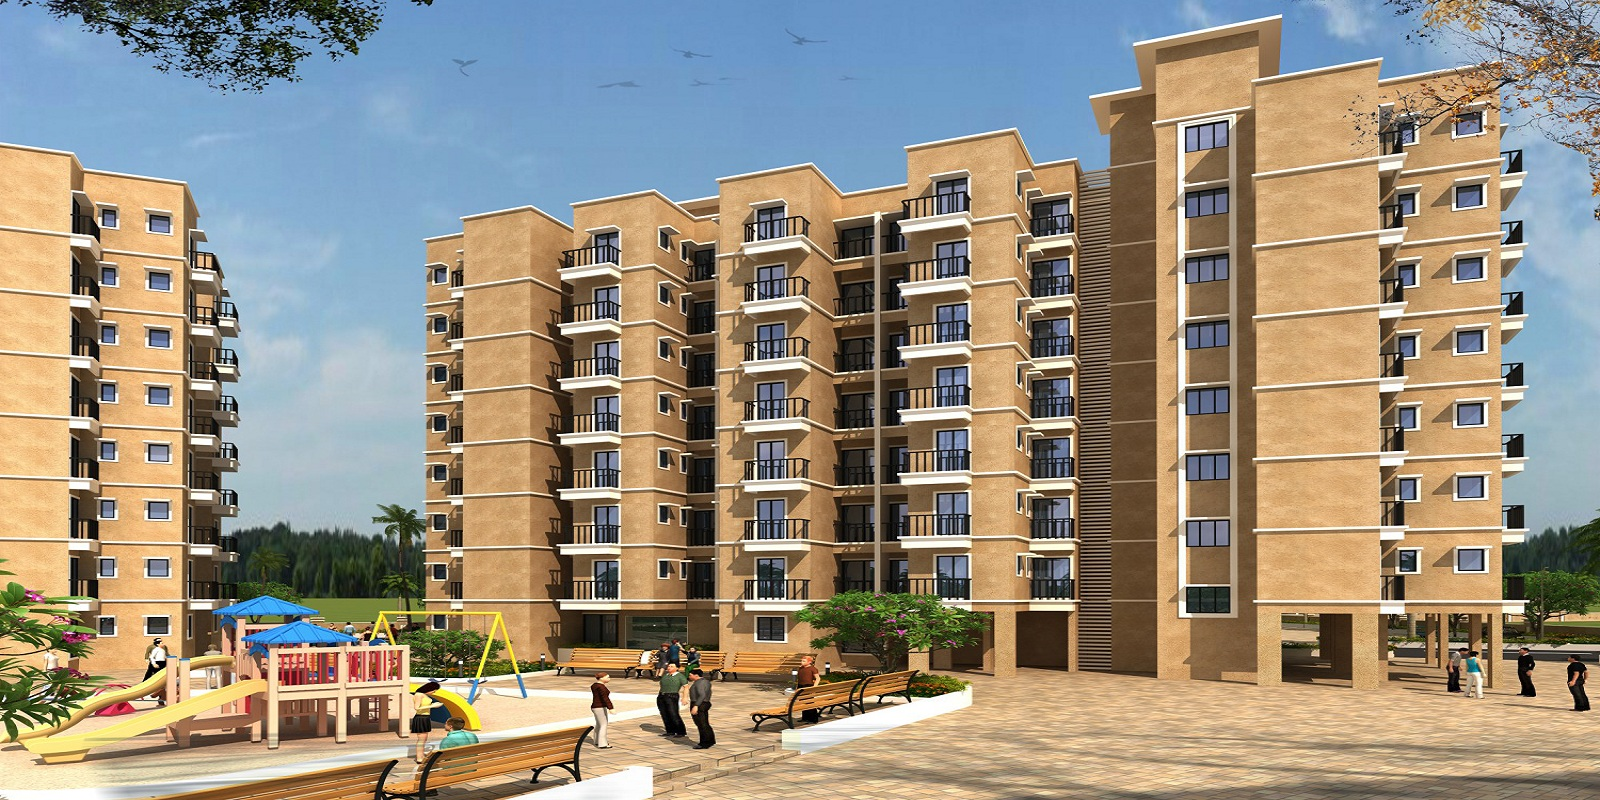 panvelkar swarajya phase 1 project large image2